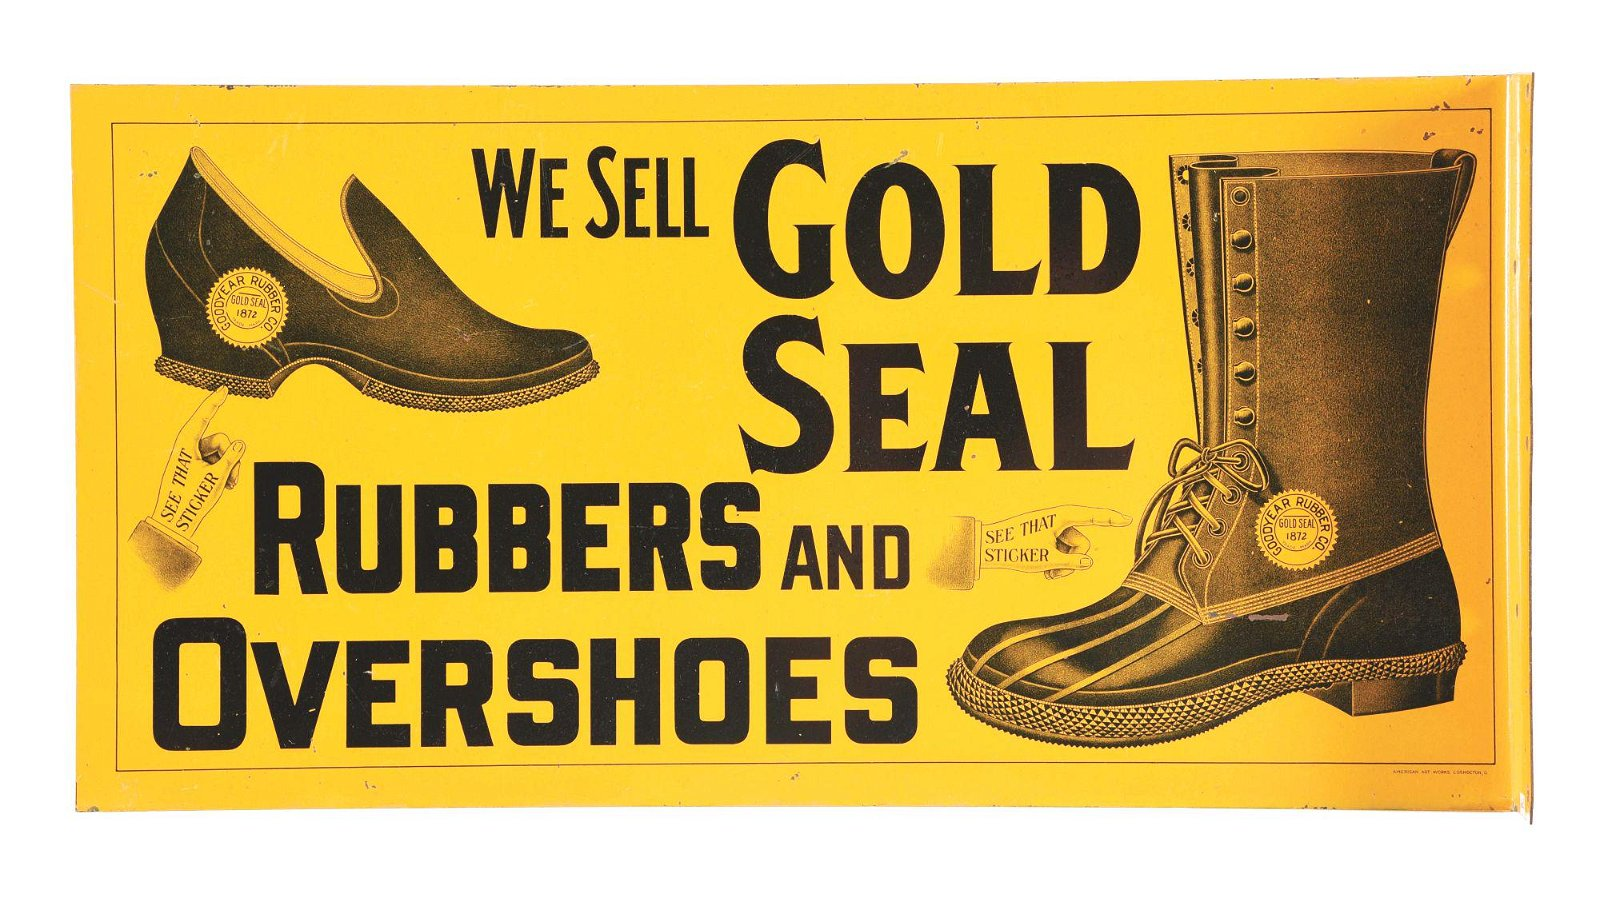 GOLD SEAL RUBBERS AND OVERSHOES FLANGE SIGN.